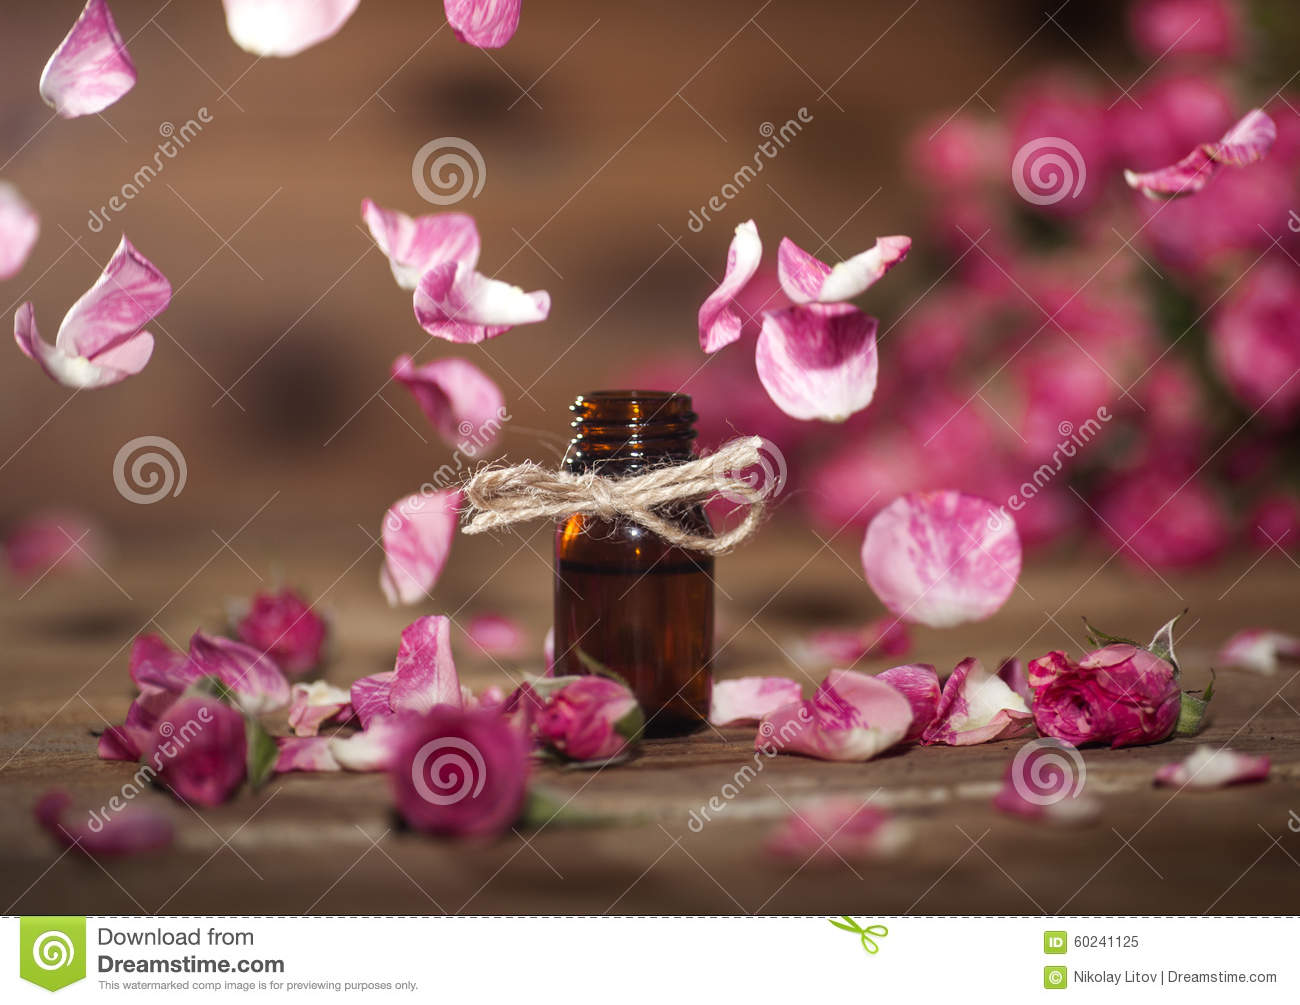 Rose essential oil stock photo image 60241125 - Rose essential oil business ...